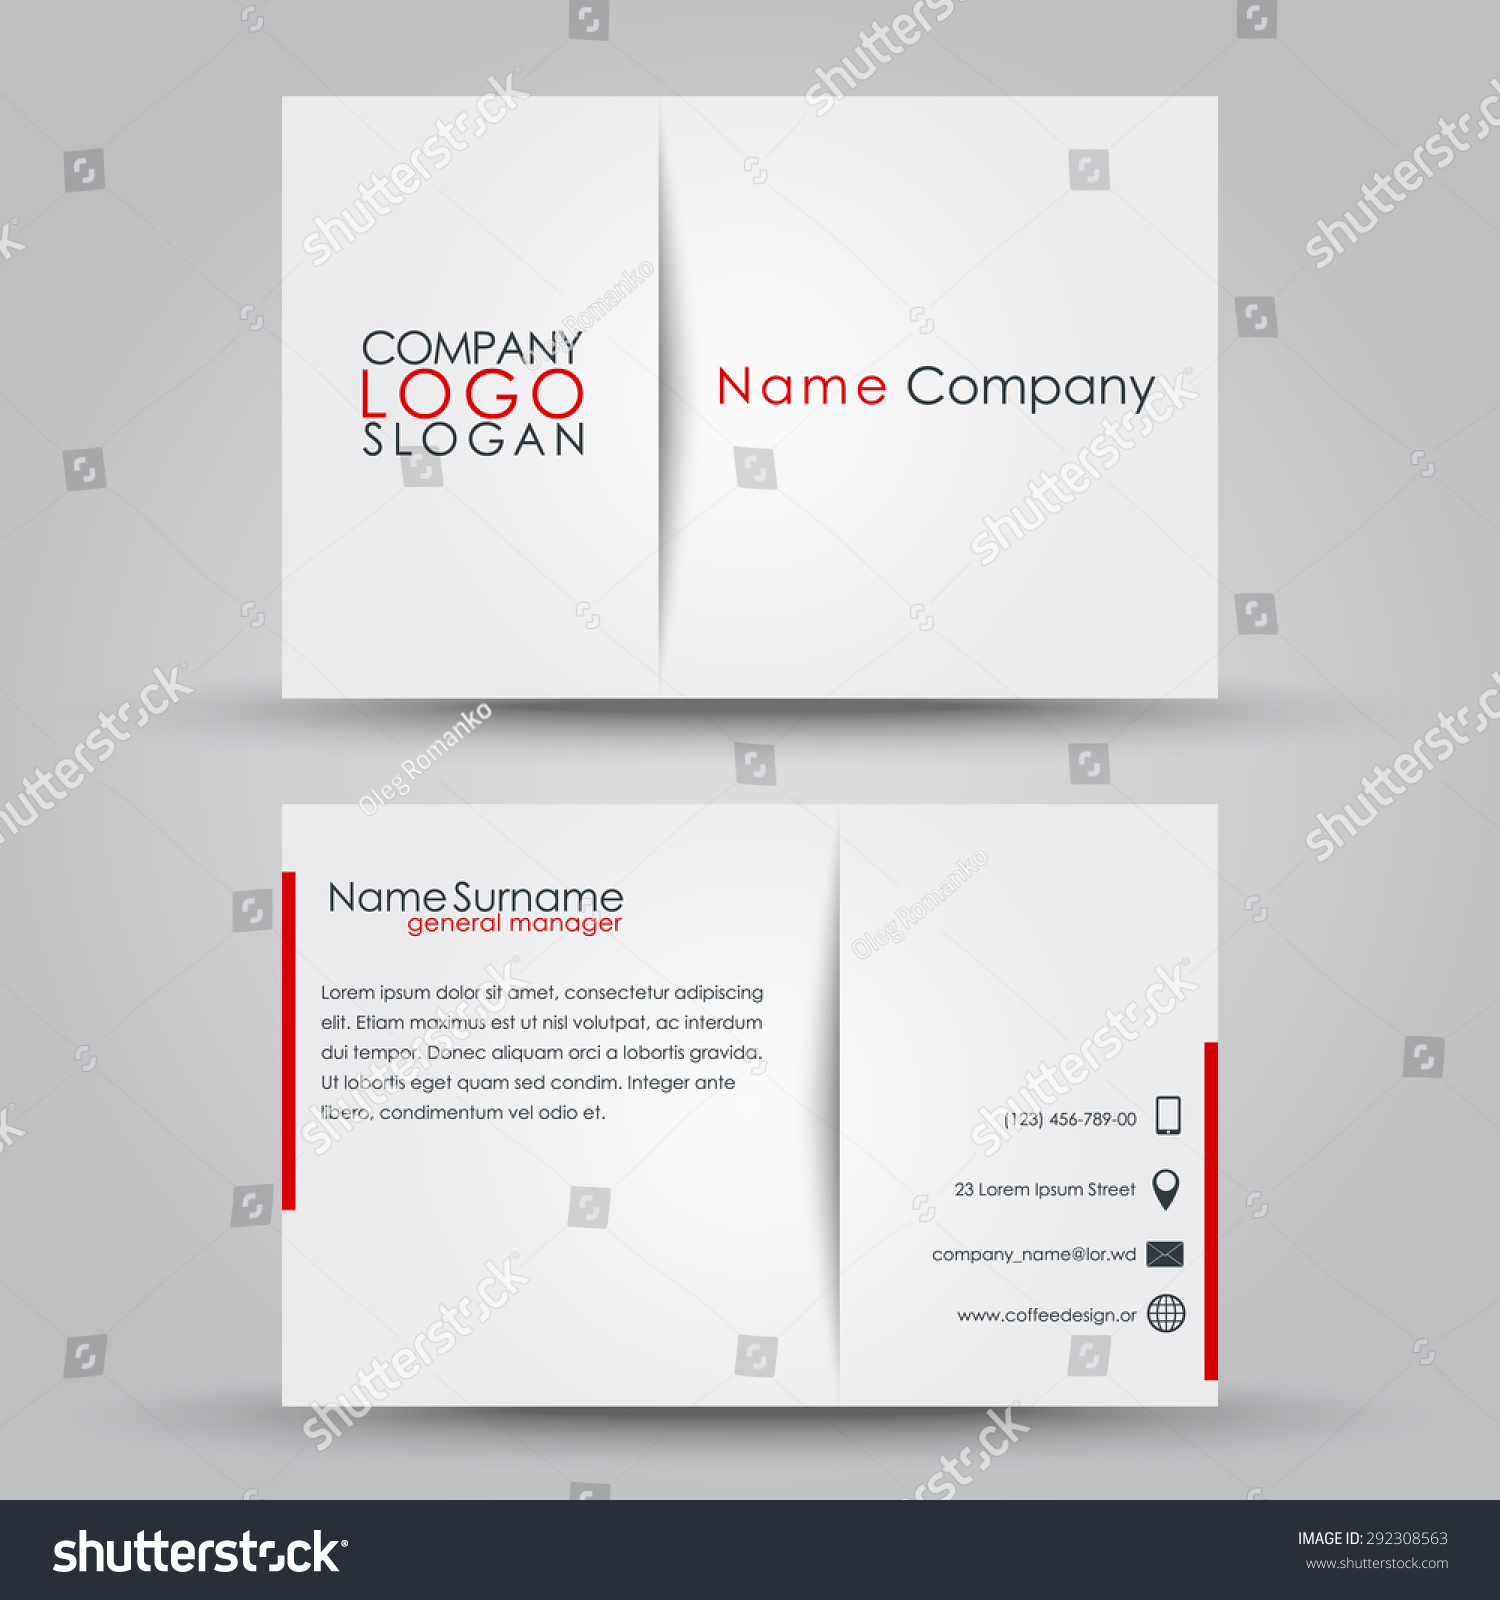 Company message for business cards examples images free business business card company images free business cards design business card company individual vector stock vector design magicingreecefo Choice Image